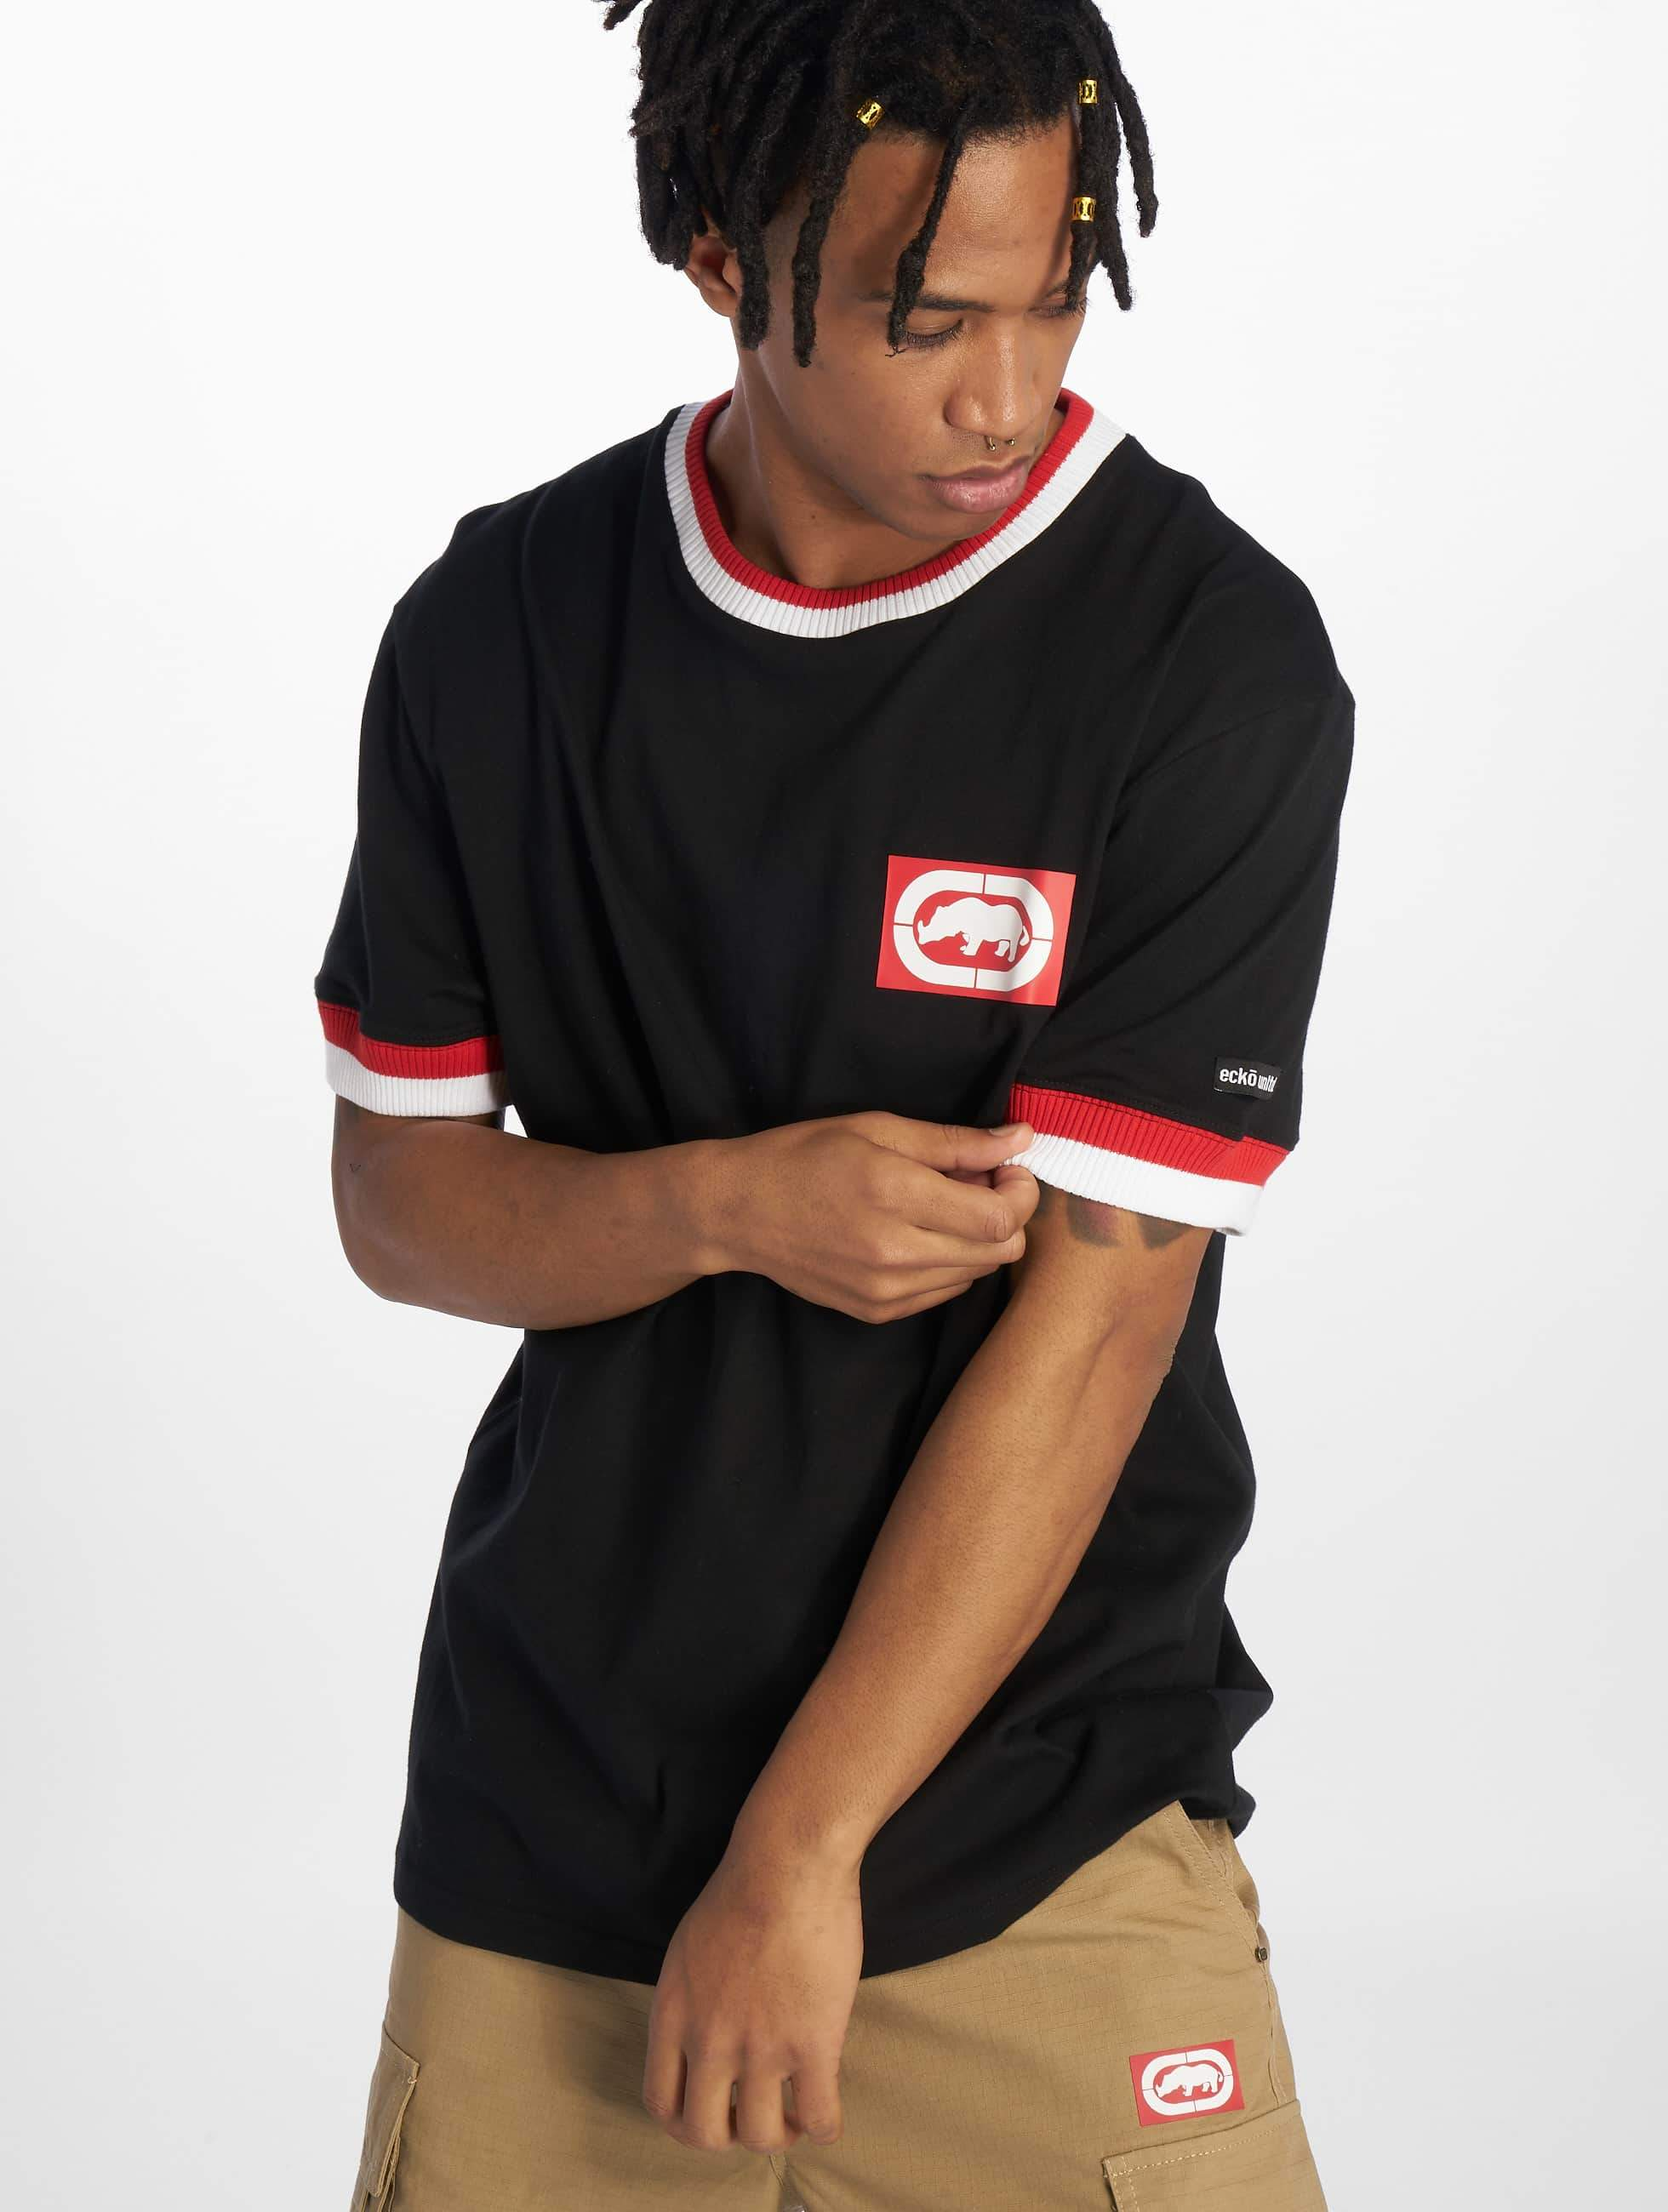 Ecko Unltd. / T-Shirt Cooper in black 2XL